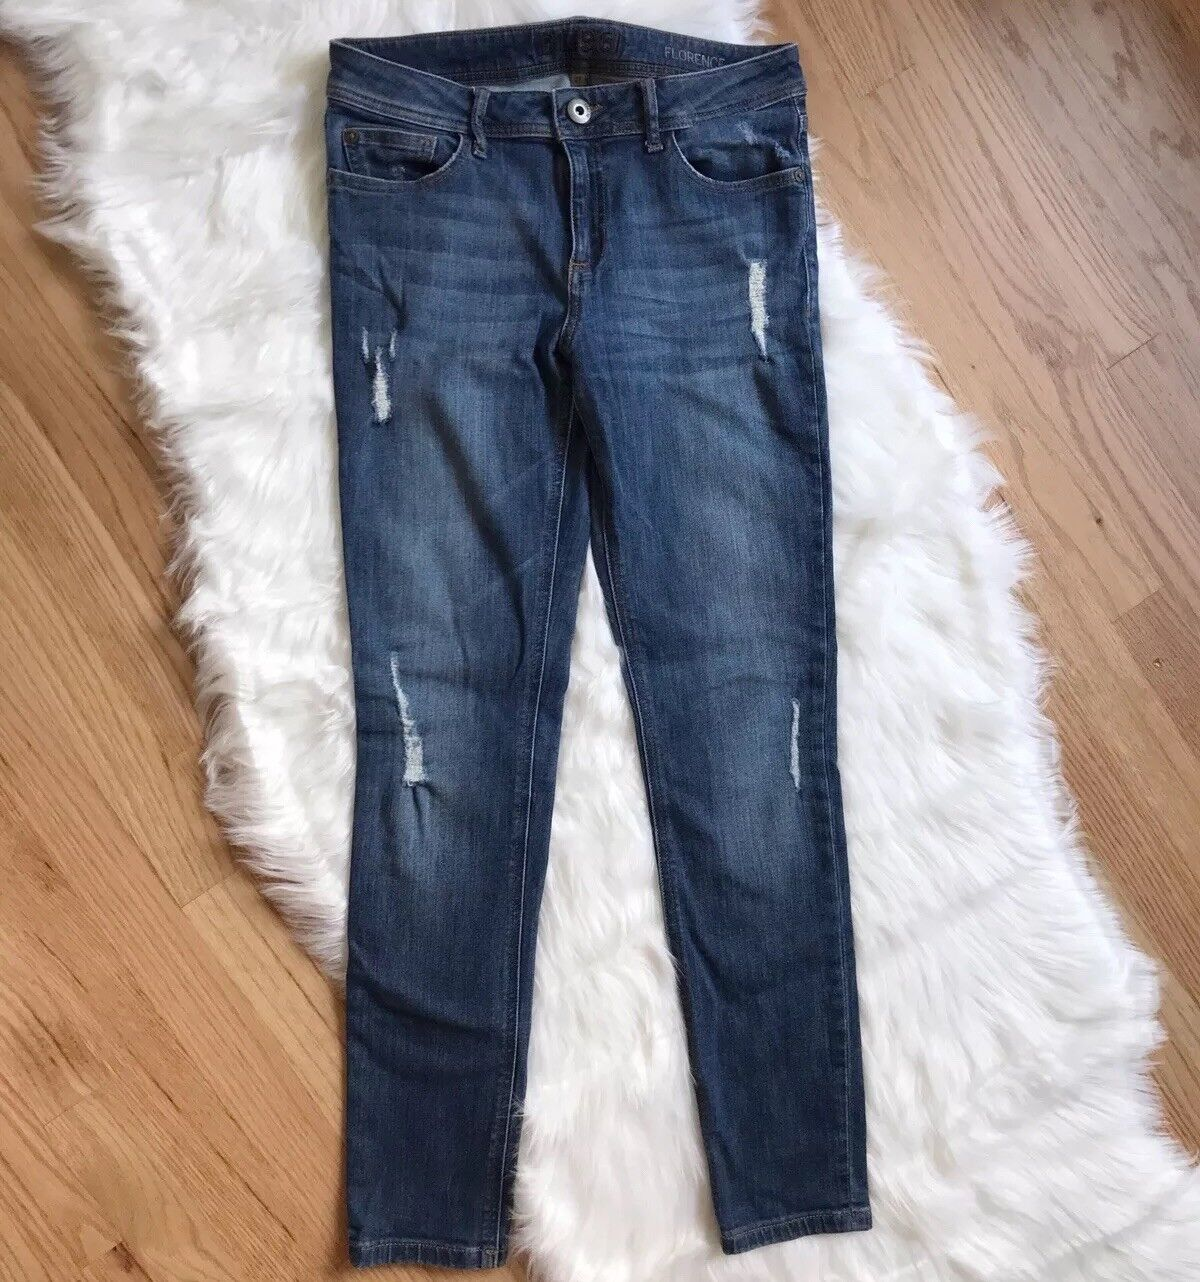 DL1961 Florence Instasculpt Distressed Skinny Jeans in Sydney Size 27